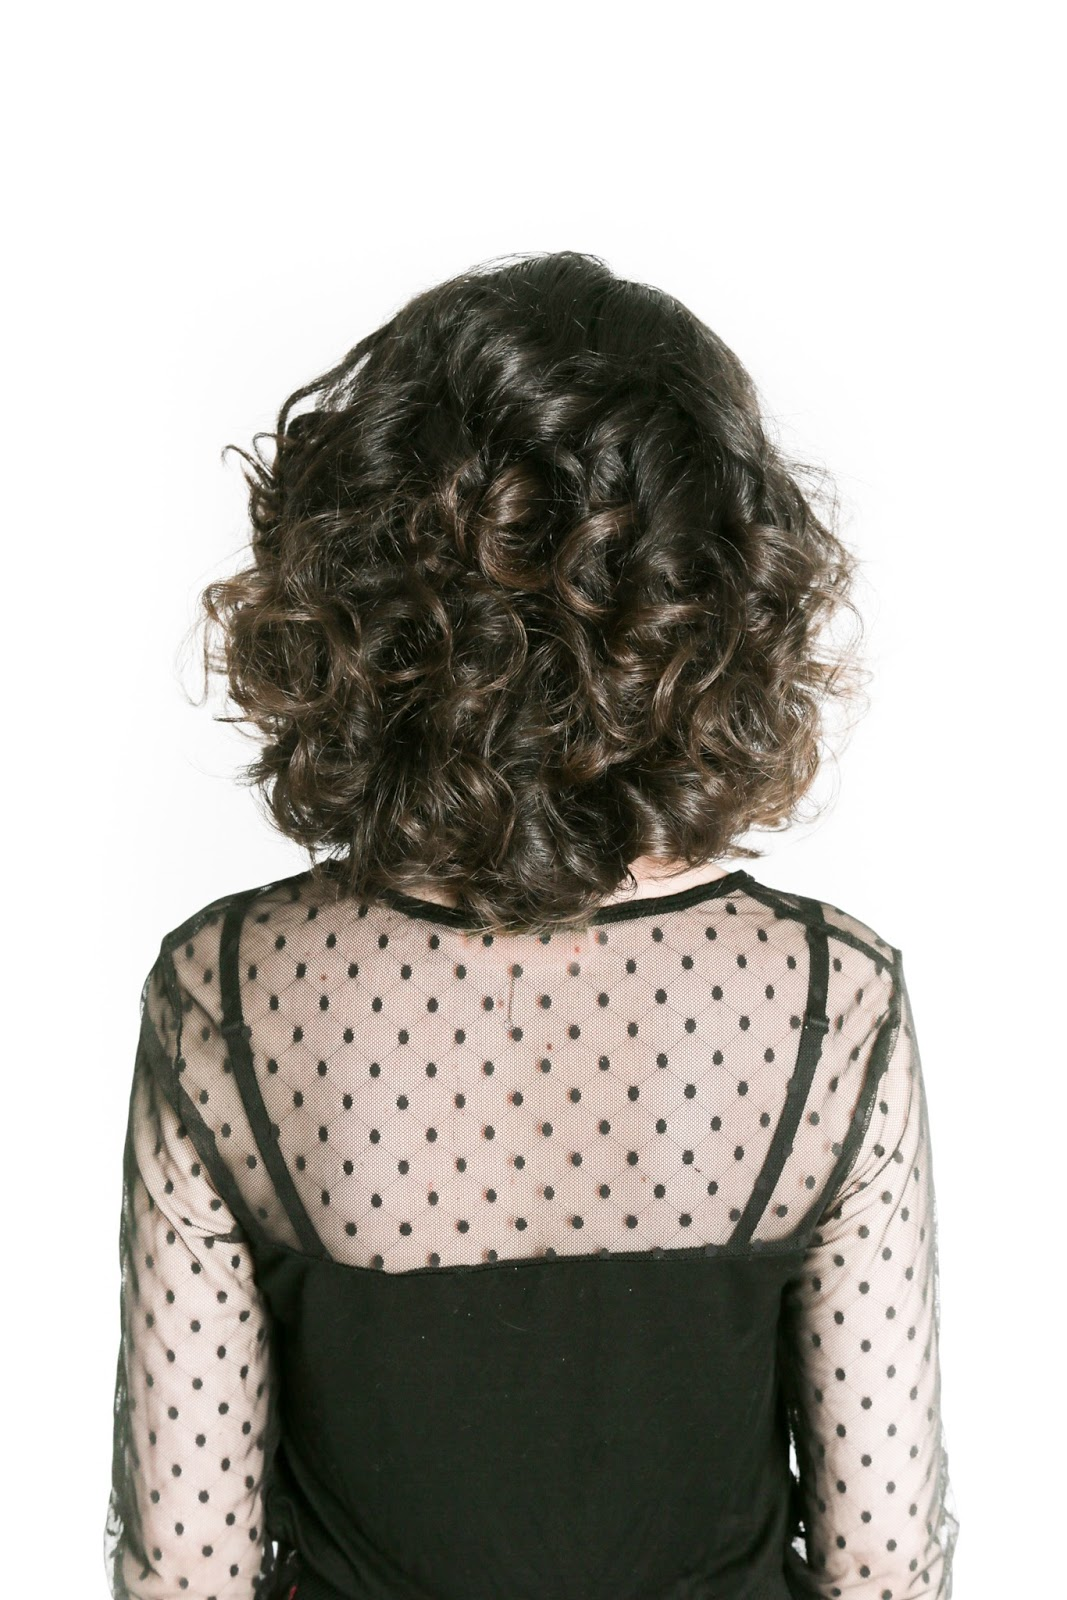 babyliss curl secret tuto étapes boucles cheveux hair courts hair curly facile comment faire